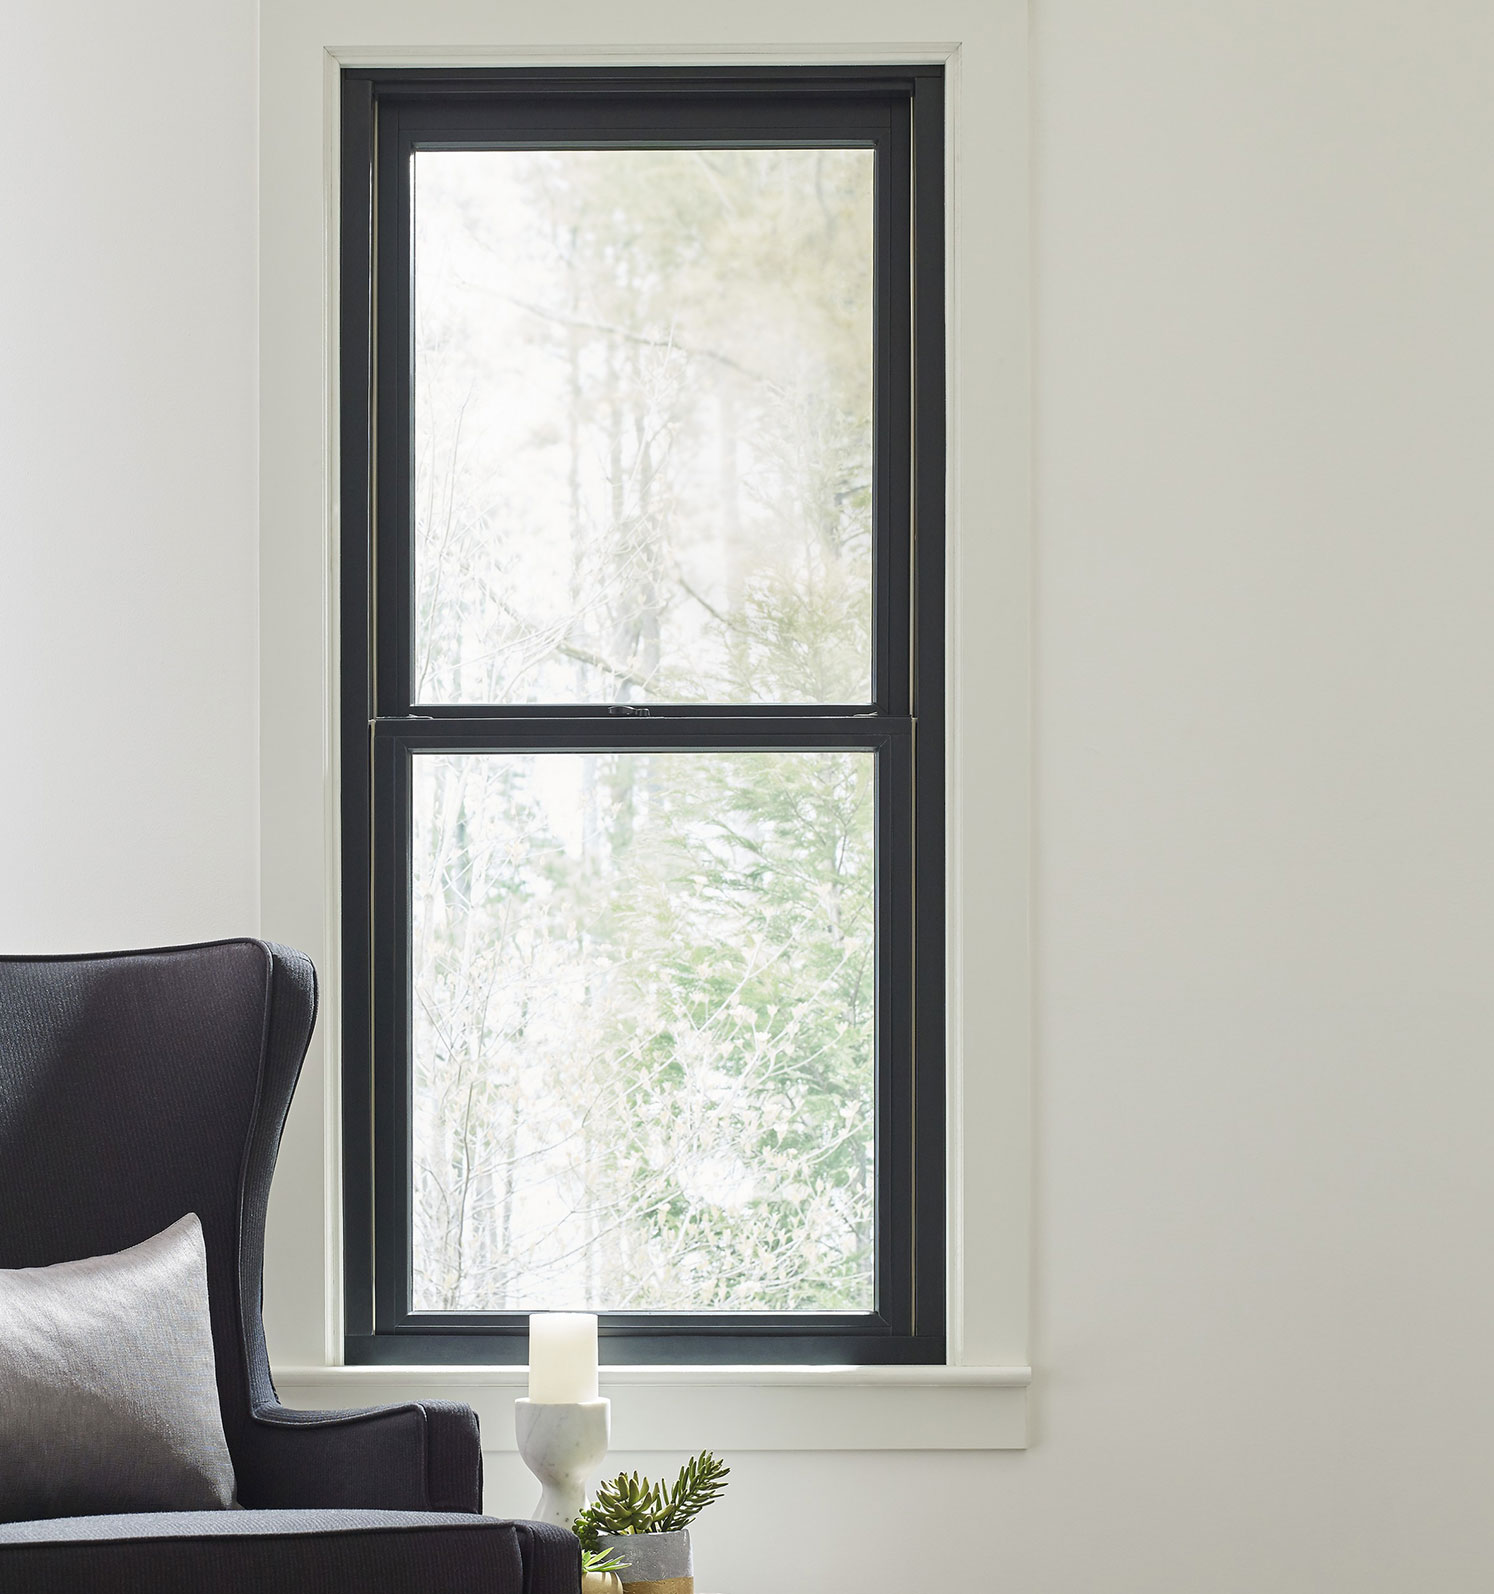 The Folding Door Store can install custom single hung windows inside your home today.